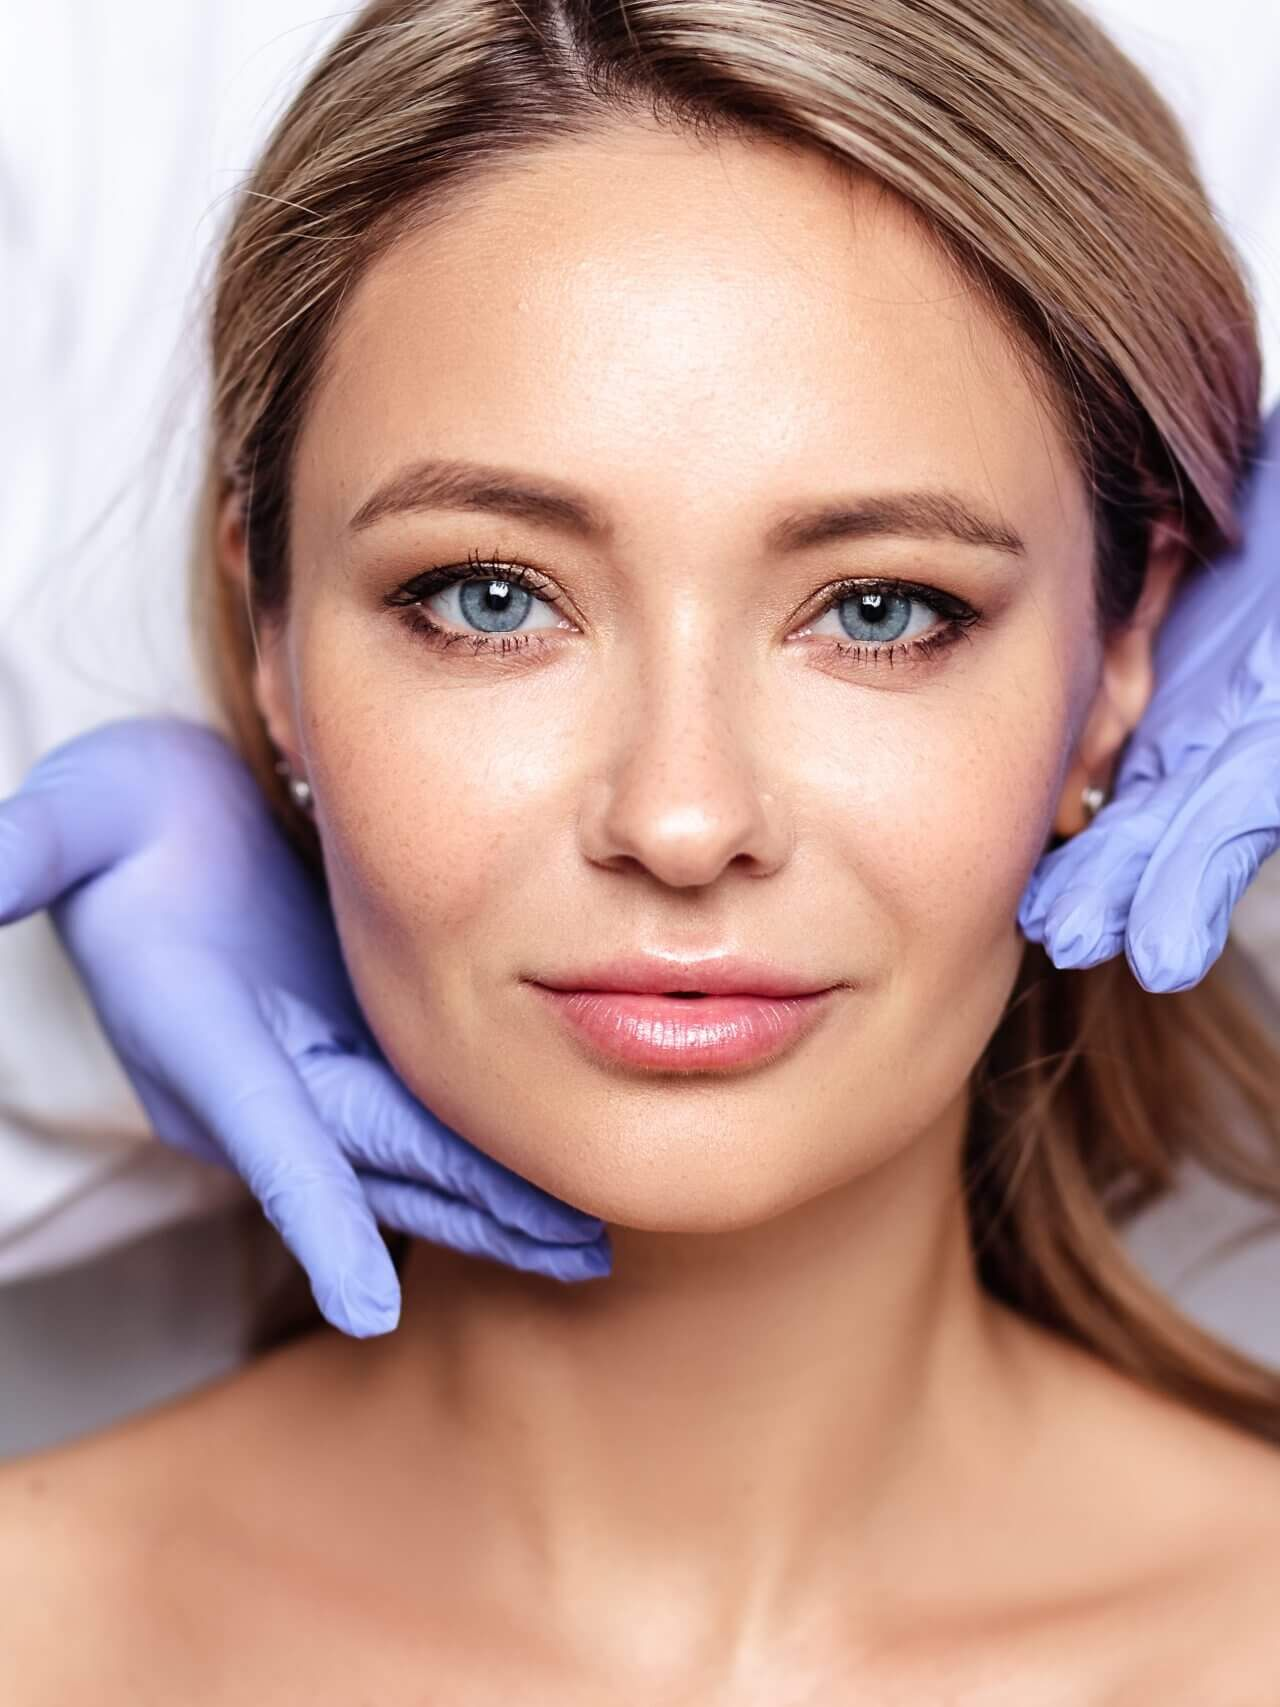 Close up portrait of young blonde woman with cosmetologyst hands in a gloves. Preparation for operation or procedure. Perfect skin, spa and care